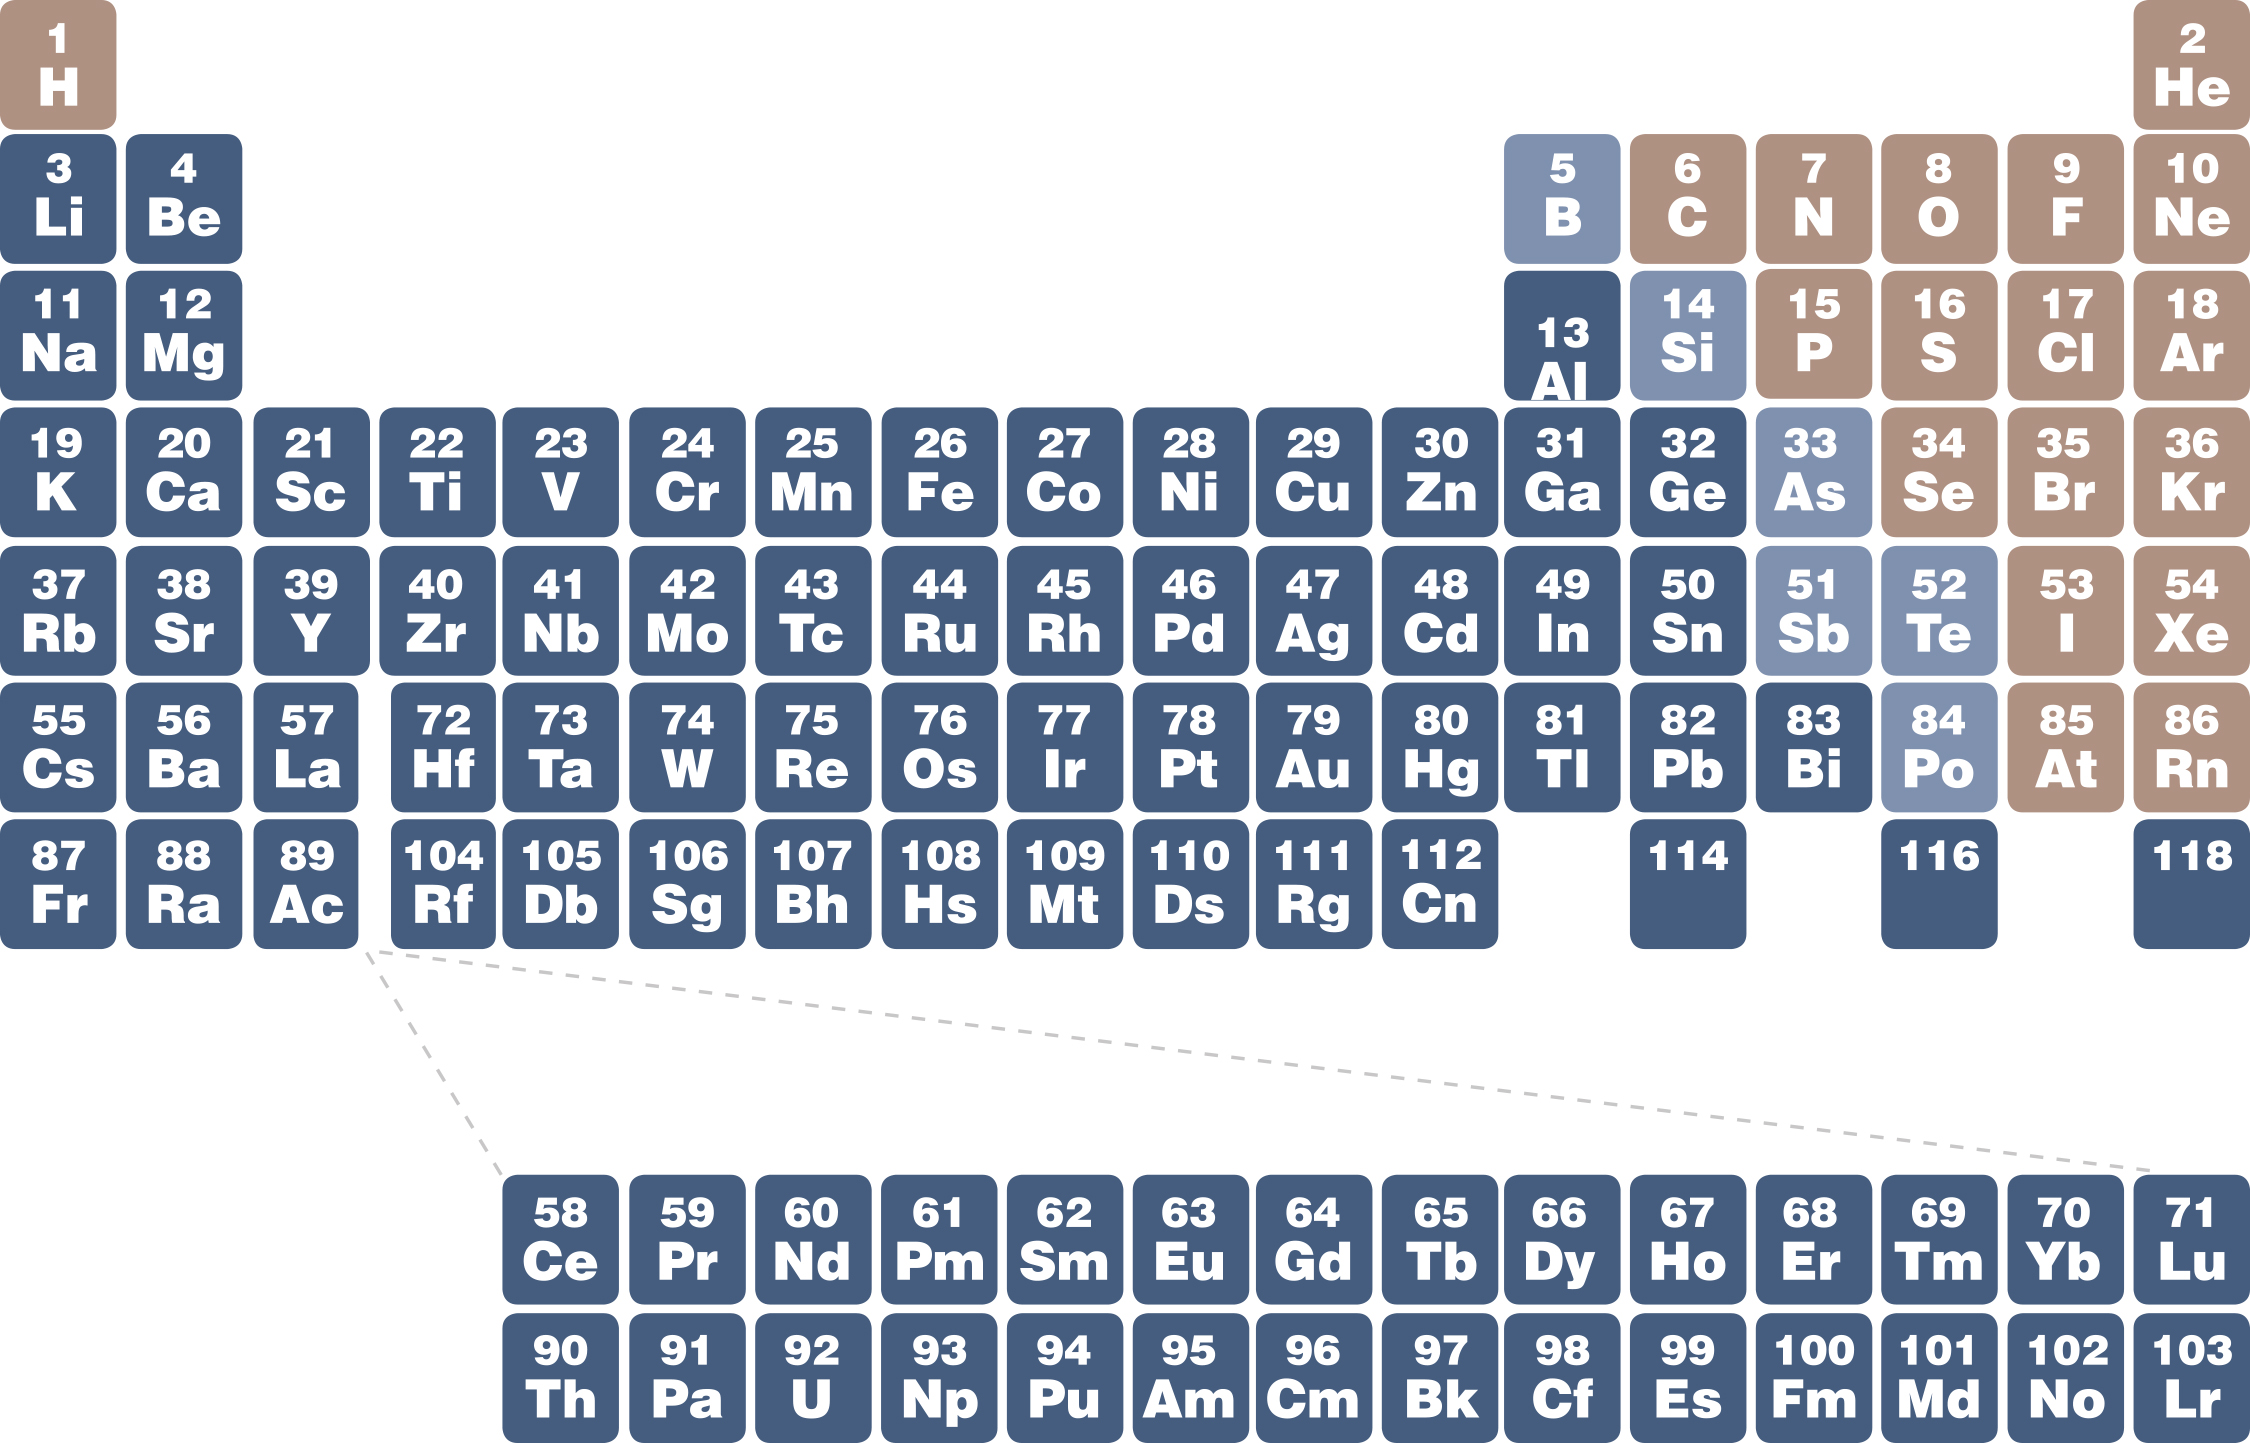 chandra resources chemistry the universe si on the periodic table - Periodic Table Abbreviation Lead